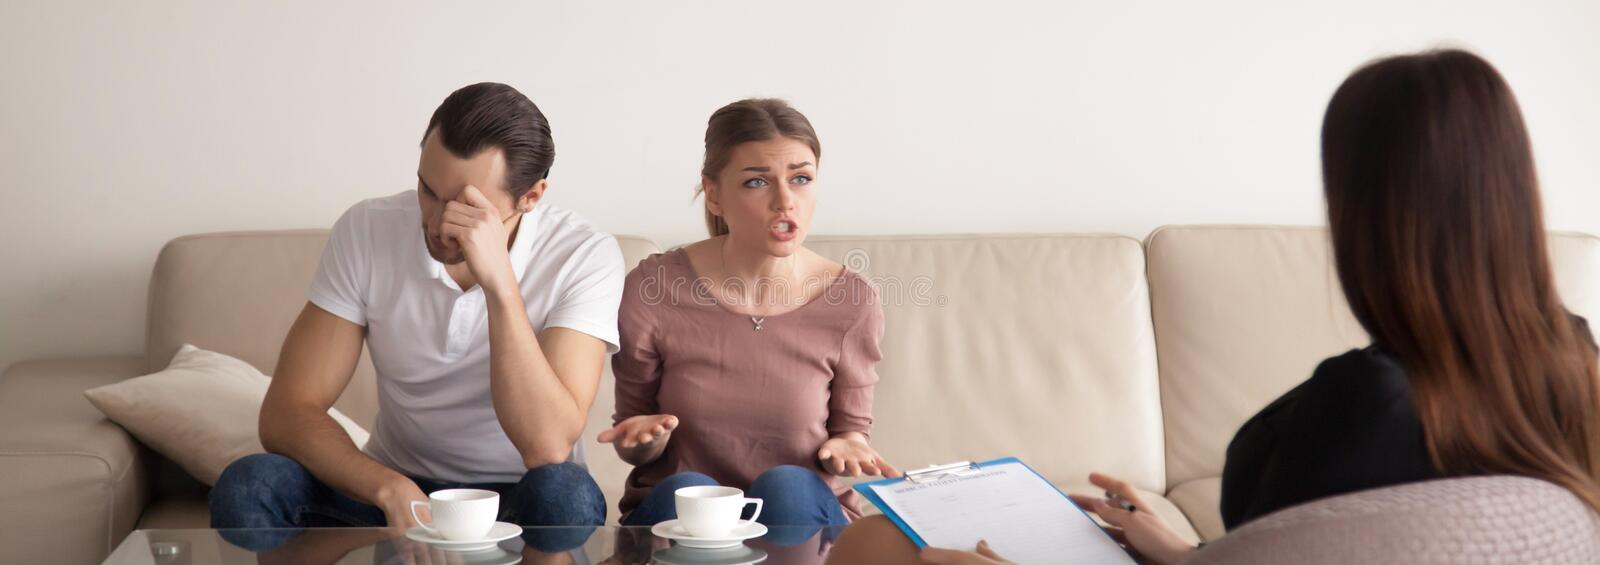 Unhappy young couple consulting family psychologist, arguing, ho. Unhappy young couple discussing with family psychologist problems in relationships, quarrelling royalty free stock images